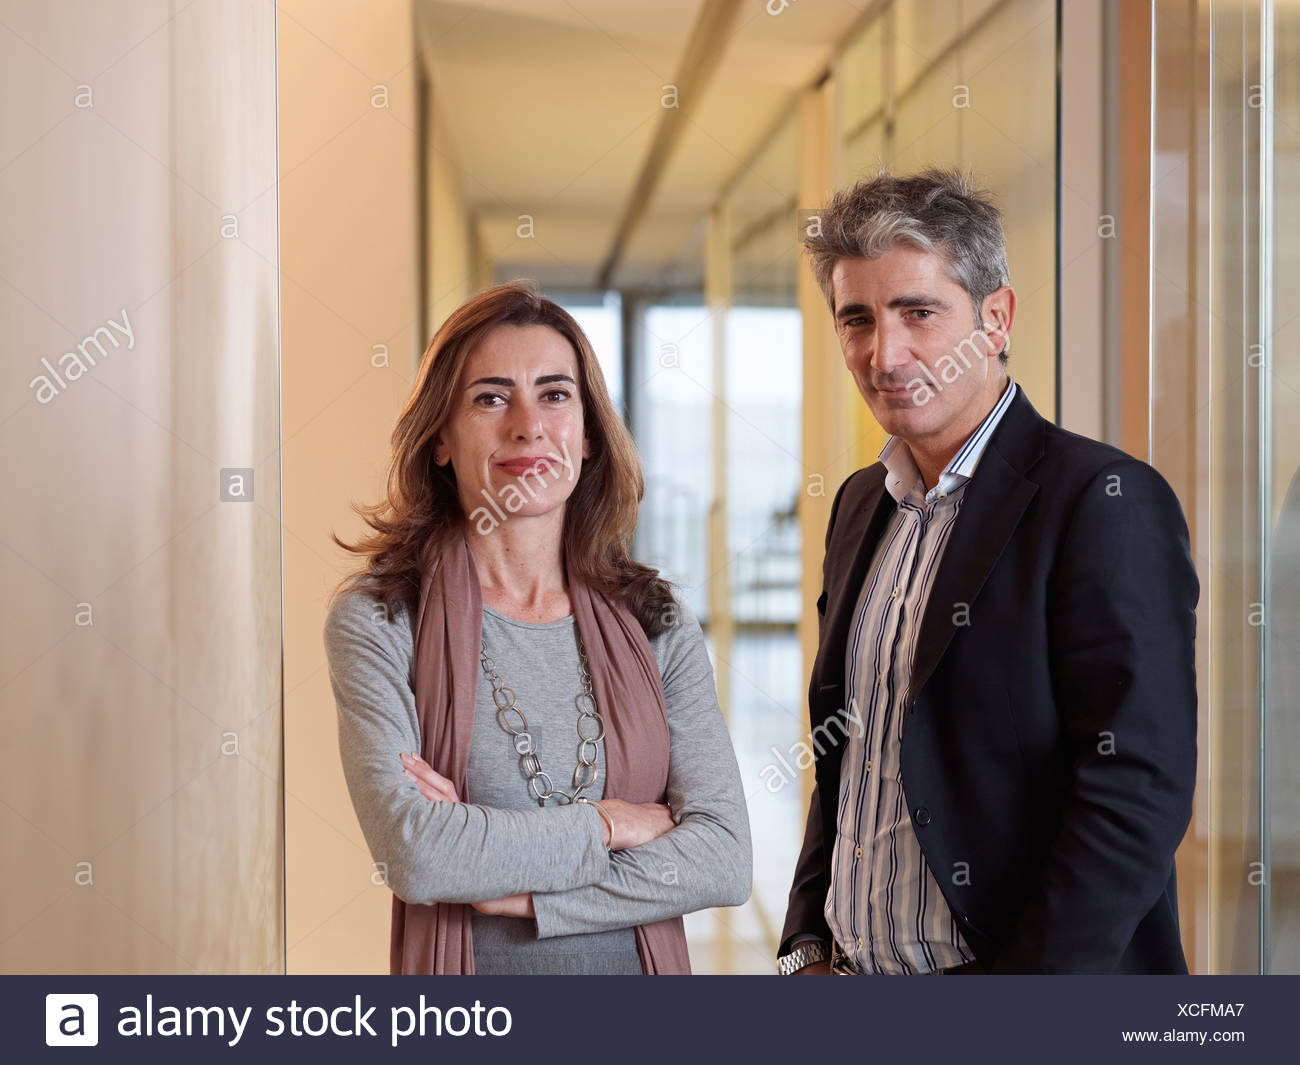 Portrait of two individuals - Stock Image